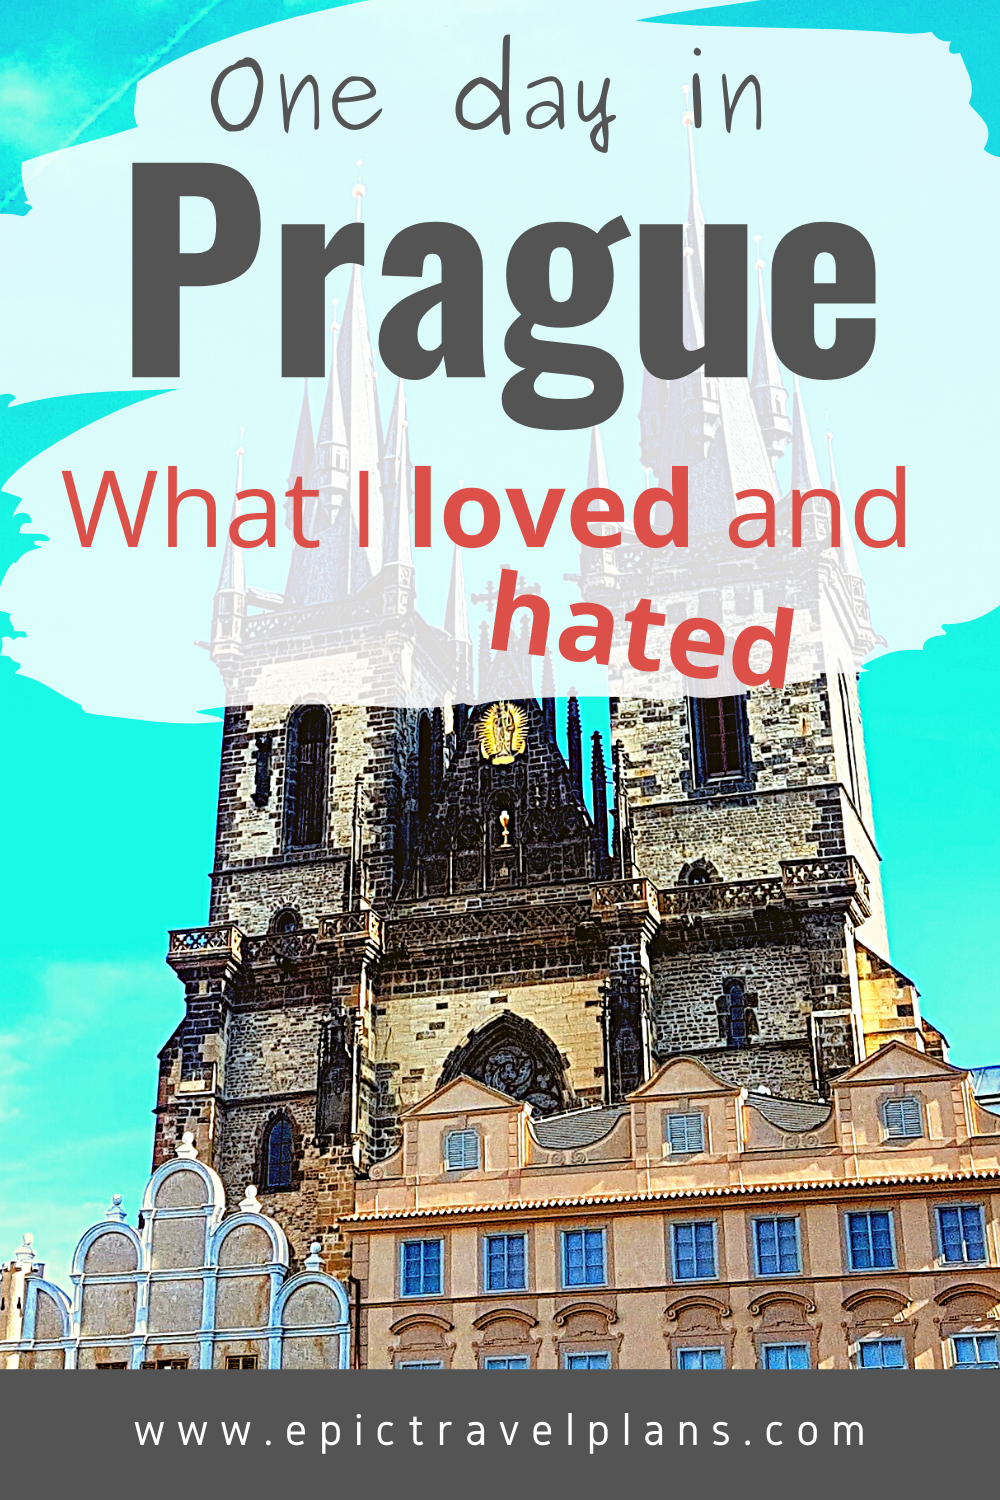 One day in Prague: What I loved and hated